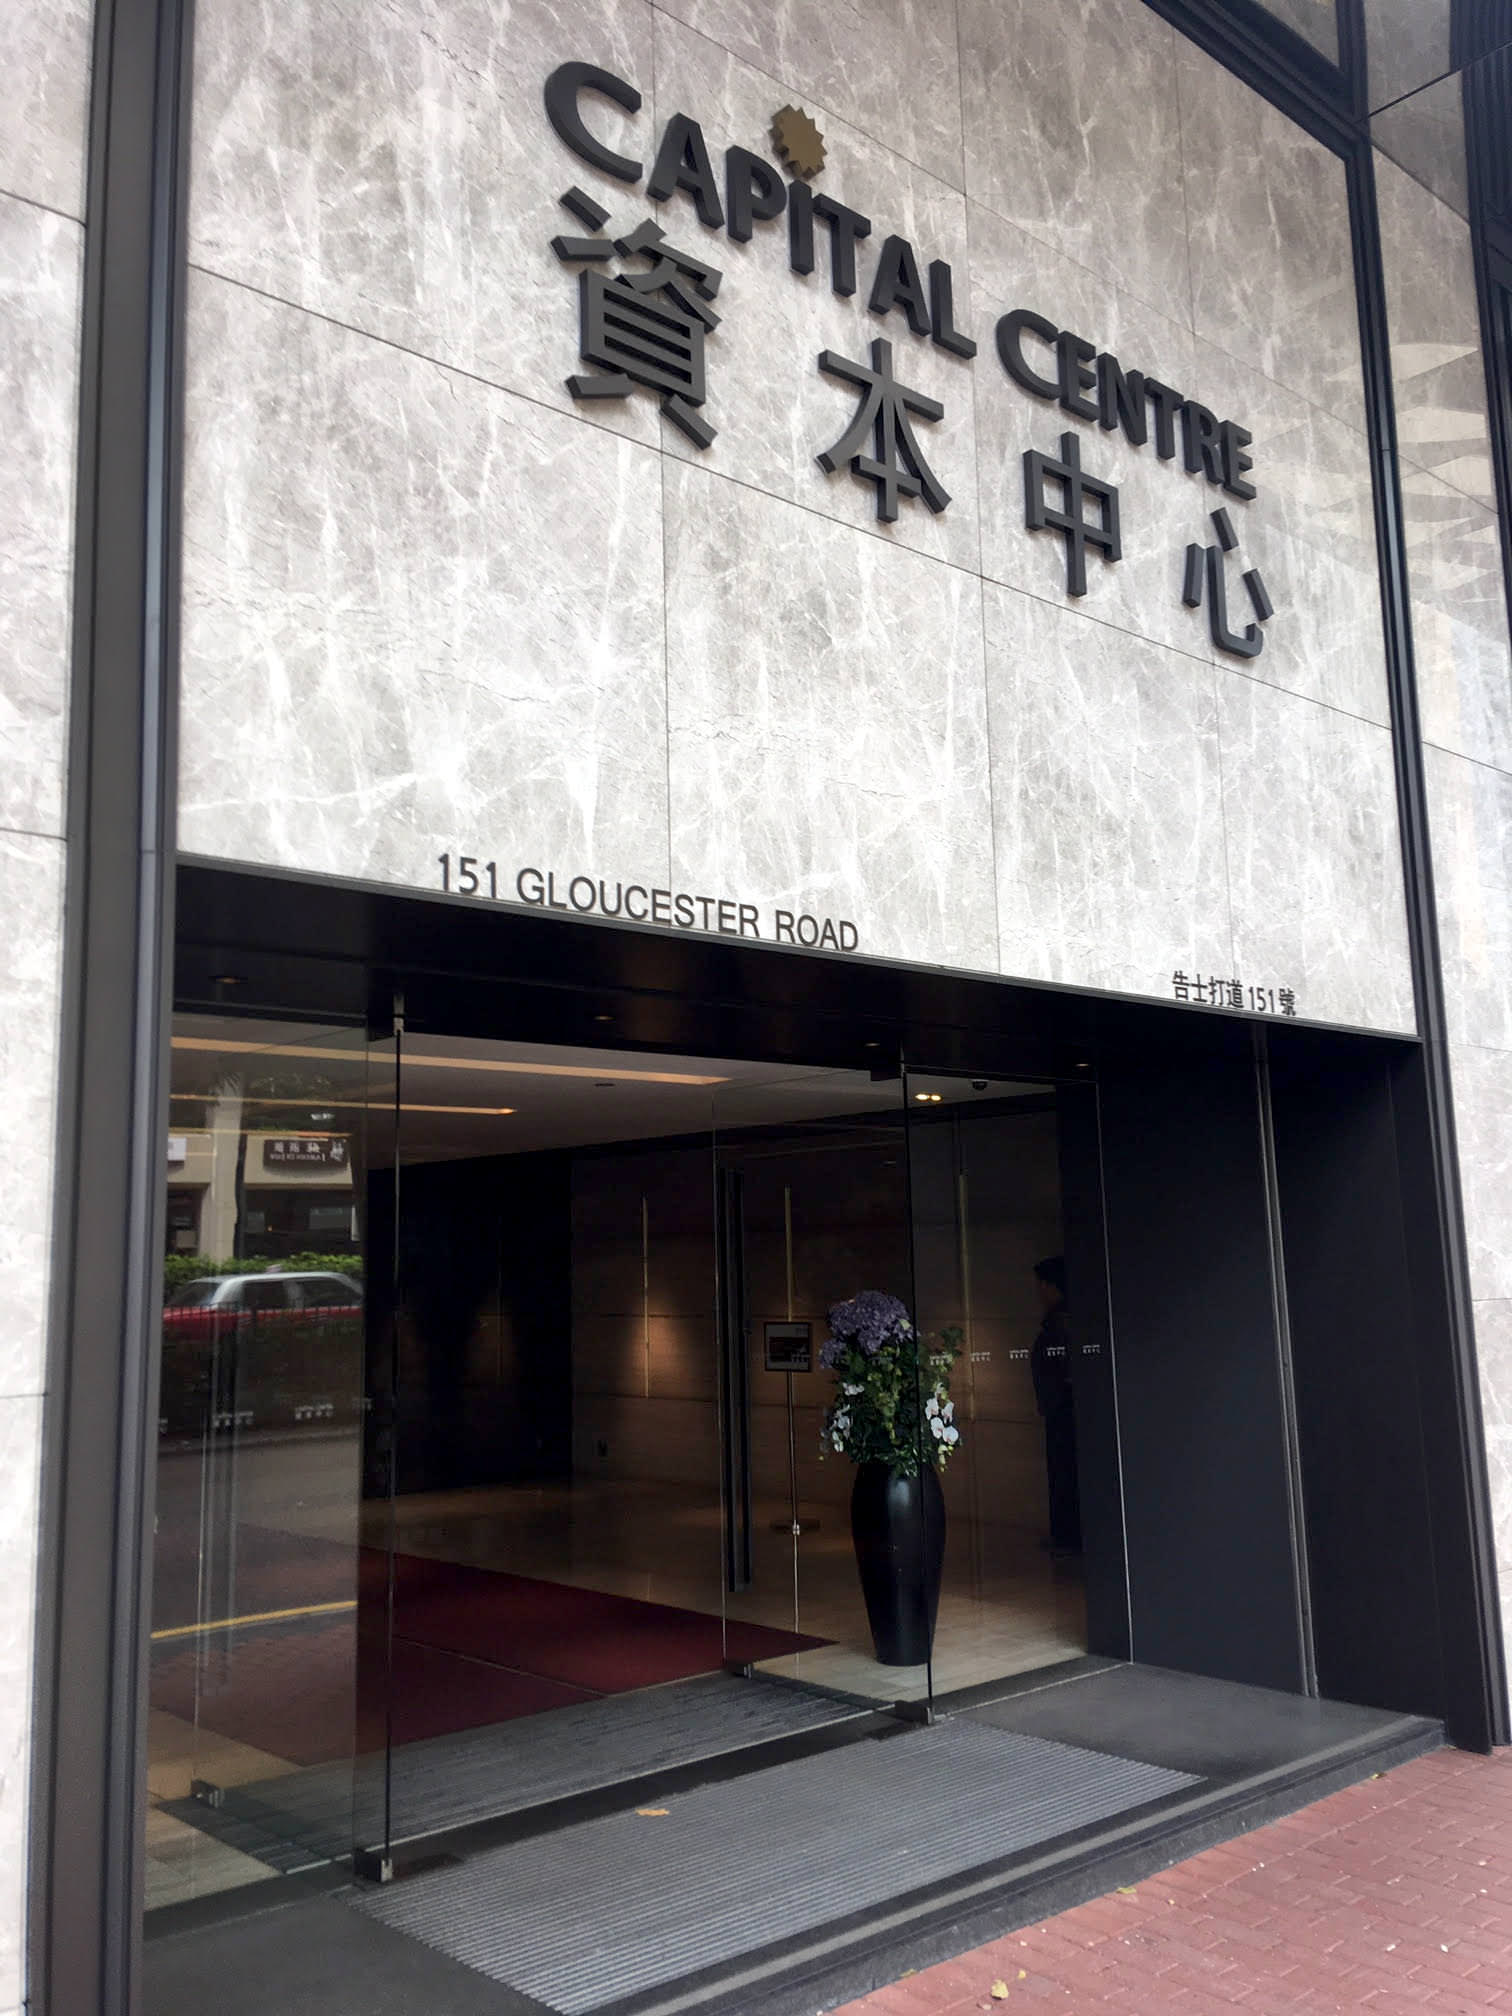 The entrance of the building (photo by Manuel Luckey)